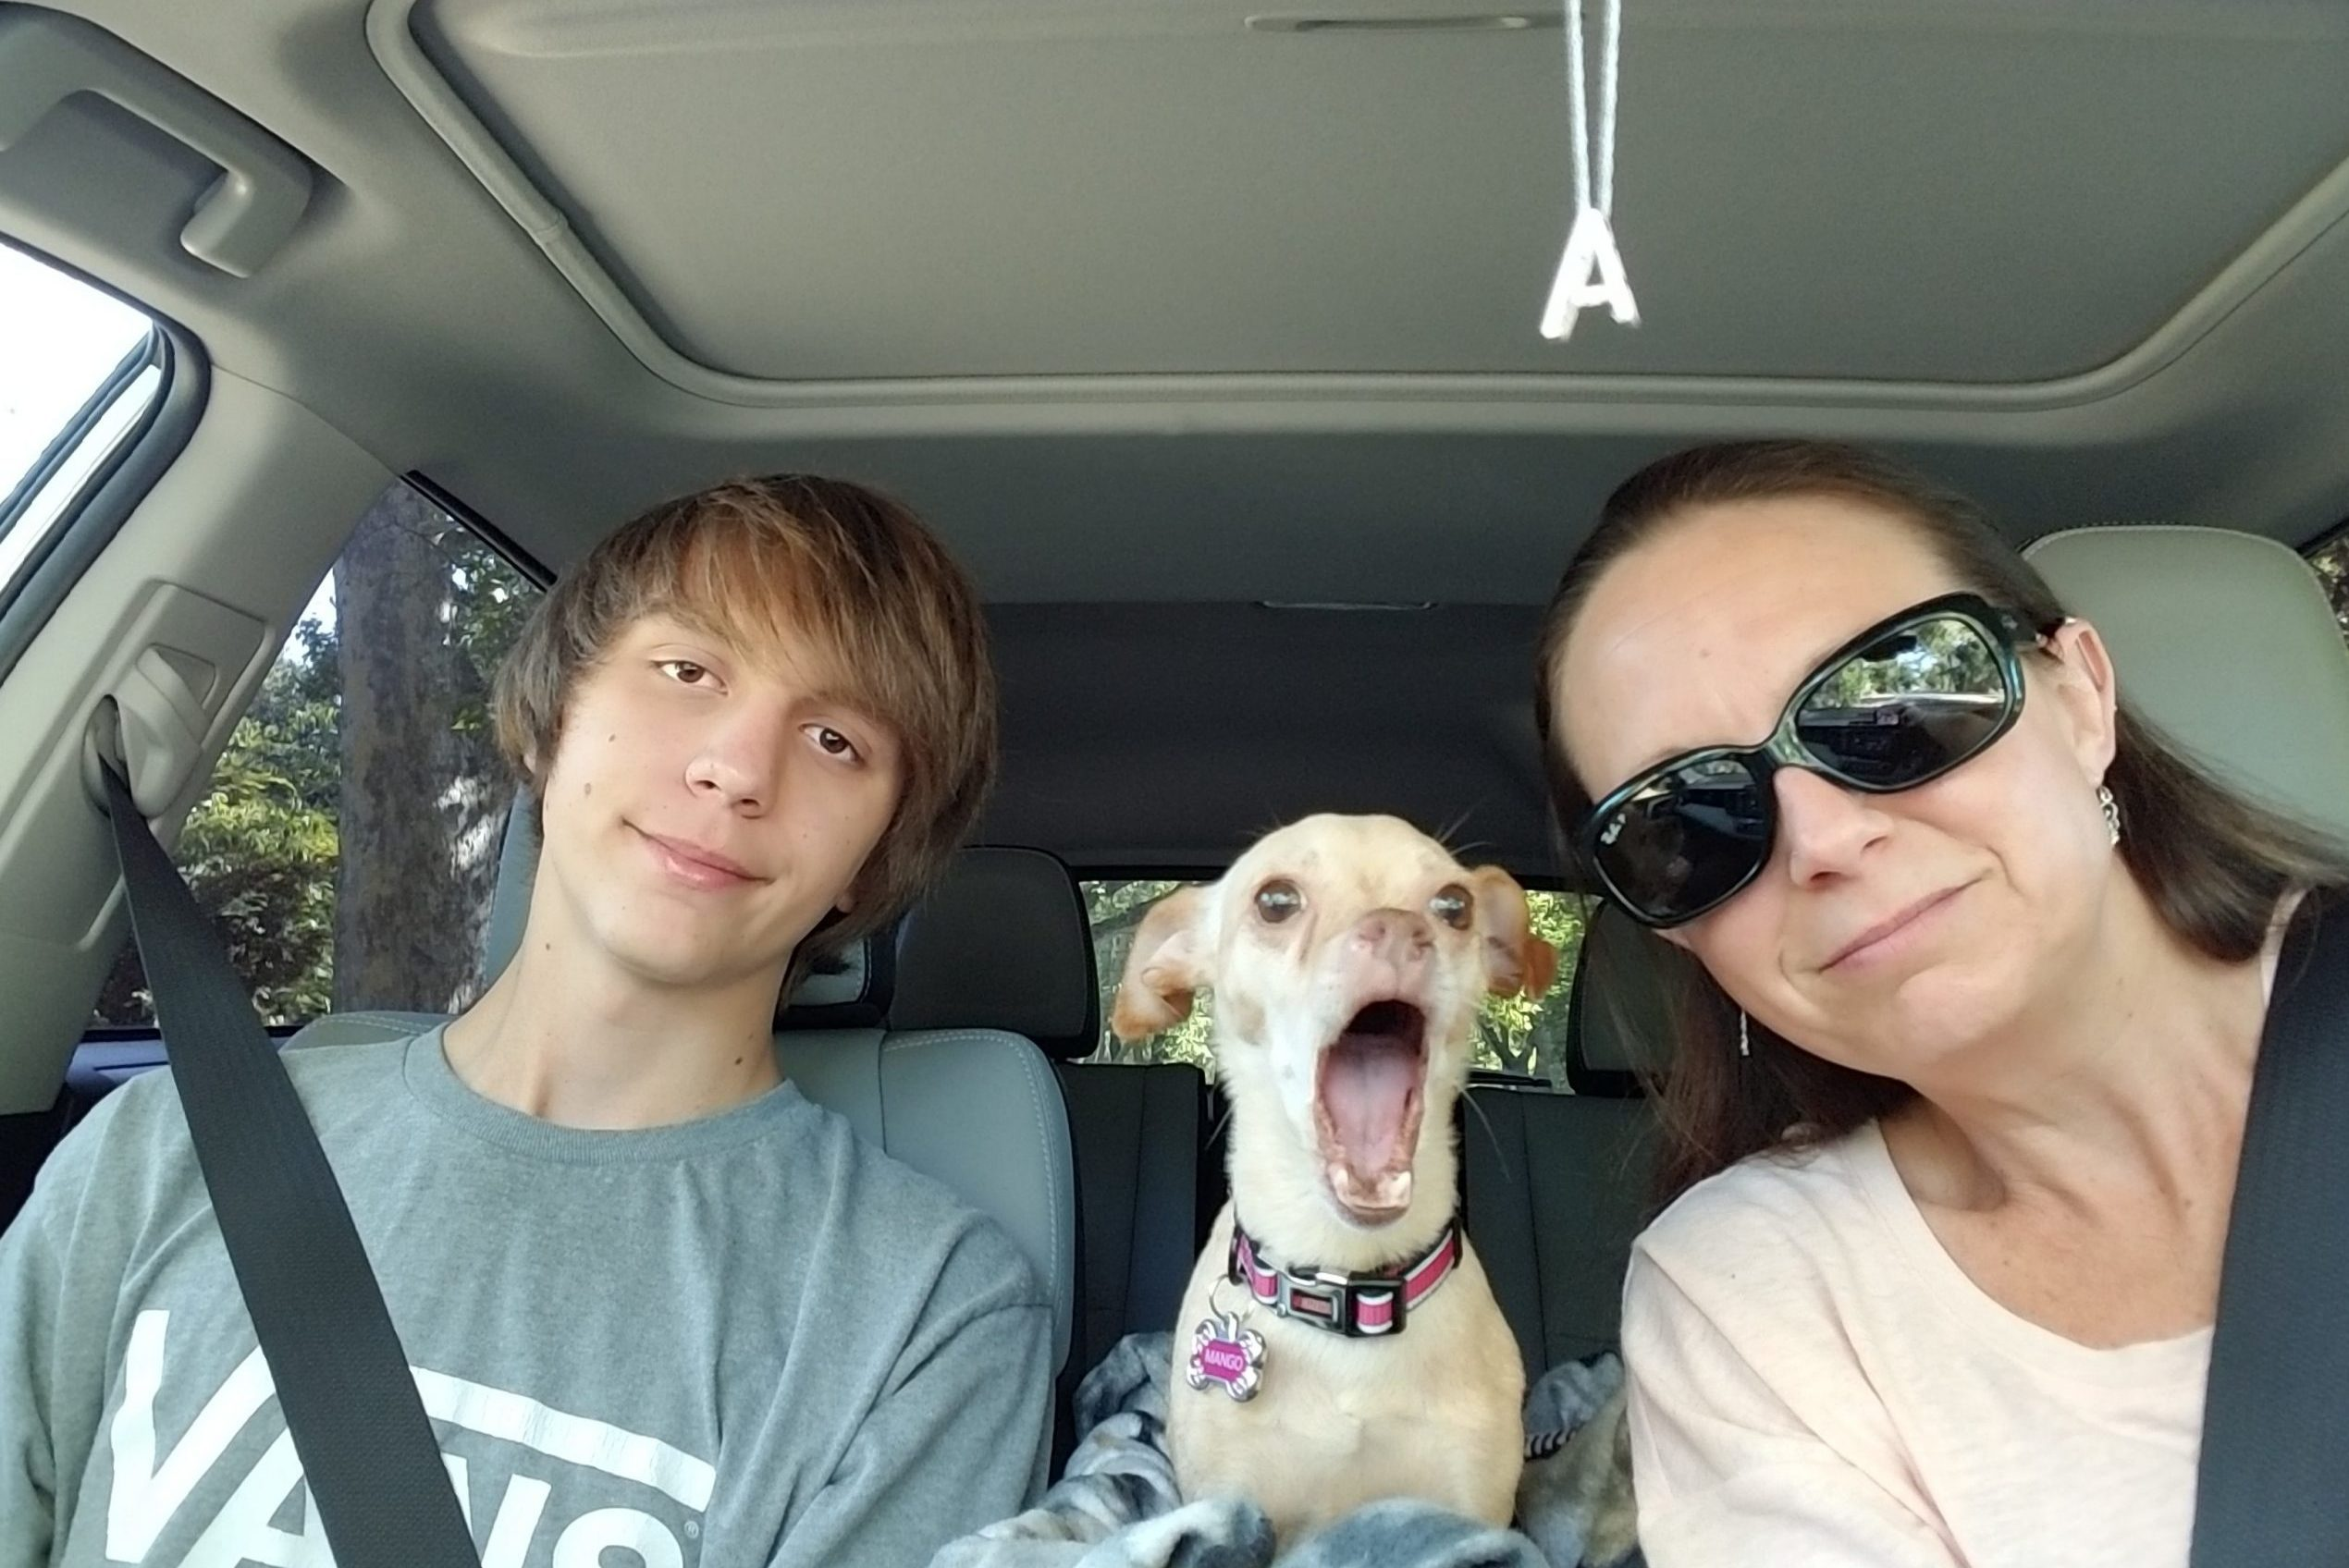 Mom and son in car with yawning puppy